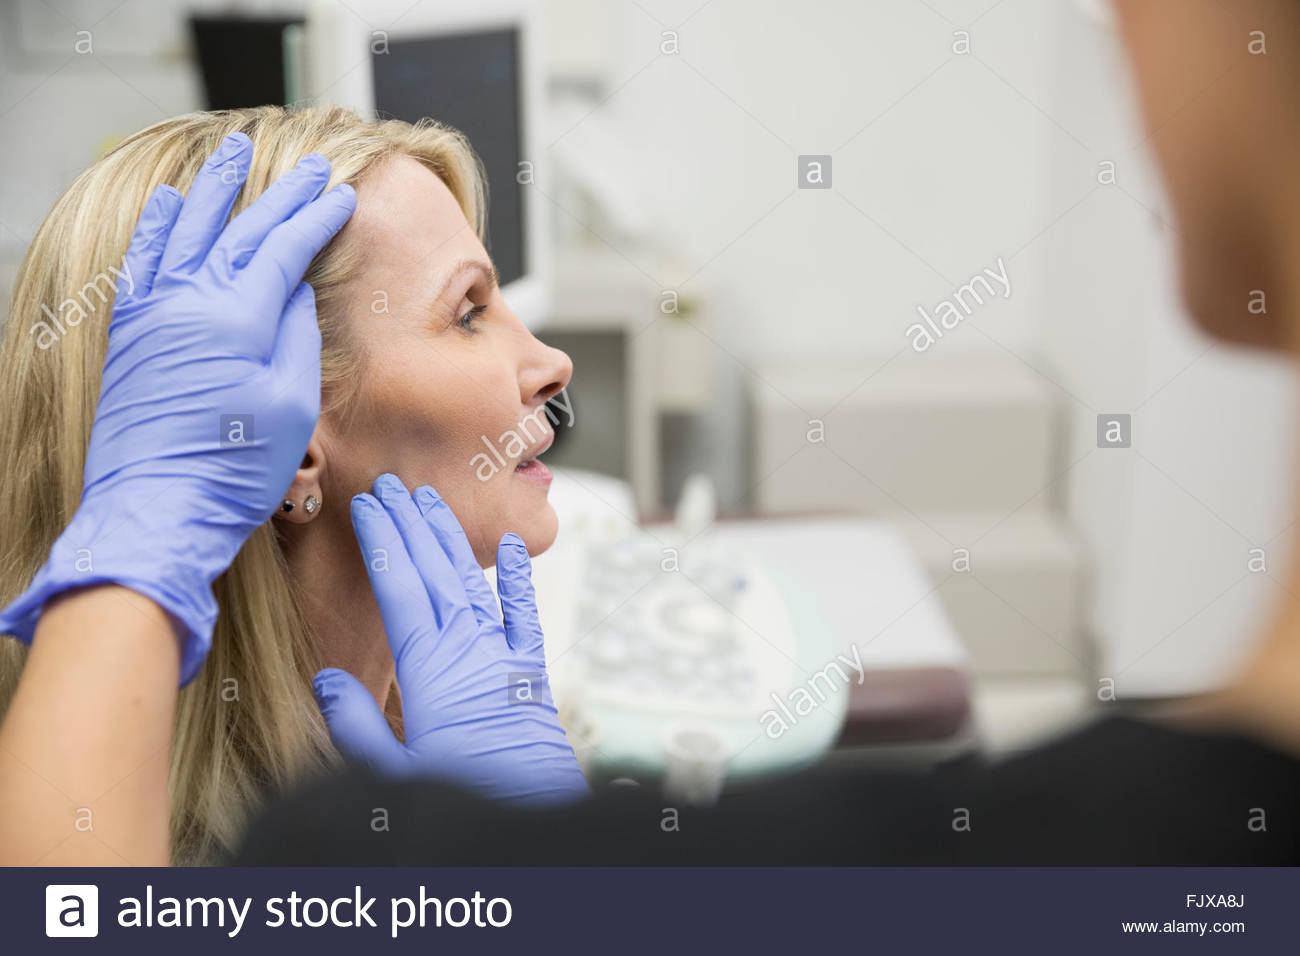 Plastic surgeon with rubber gloves examining womans cheek - Stock Image